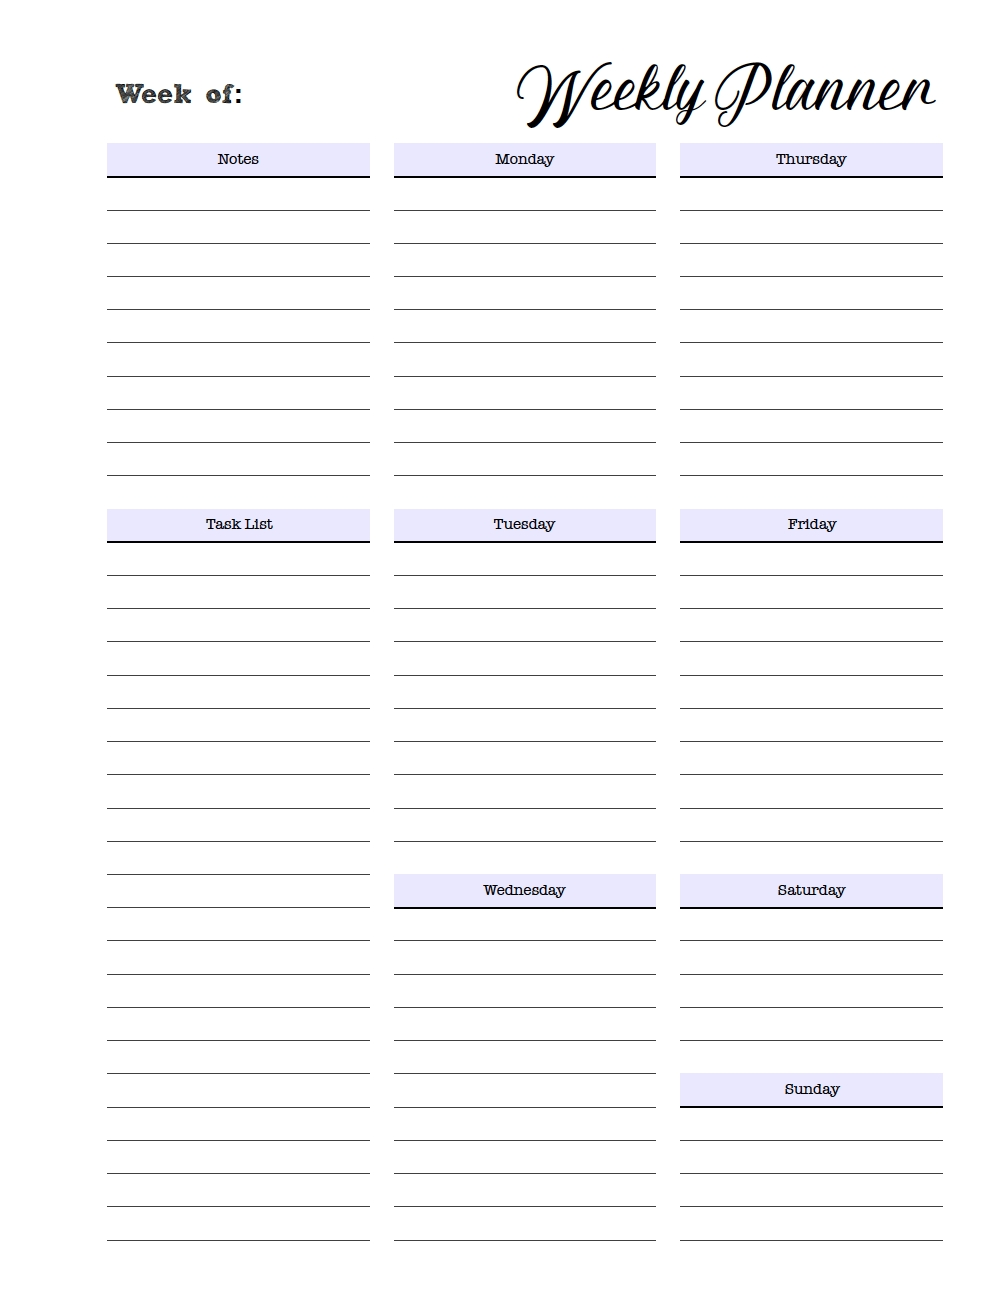 Free Printable Weekly Planners: Monday Start intended for Printable To Do Monday To Friday